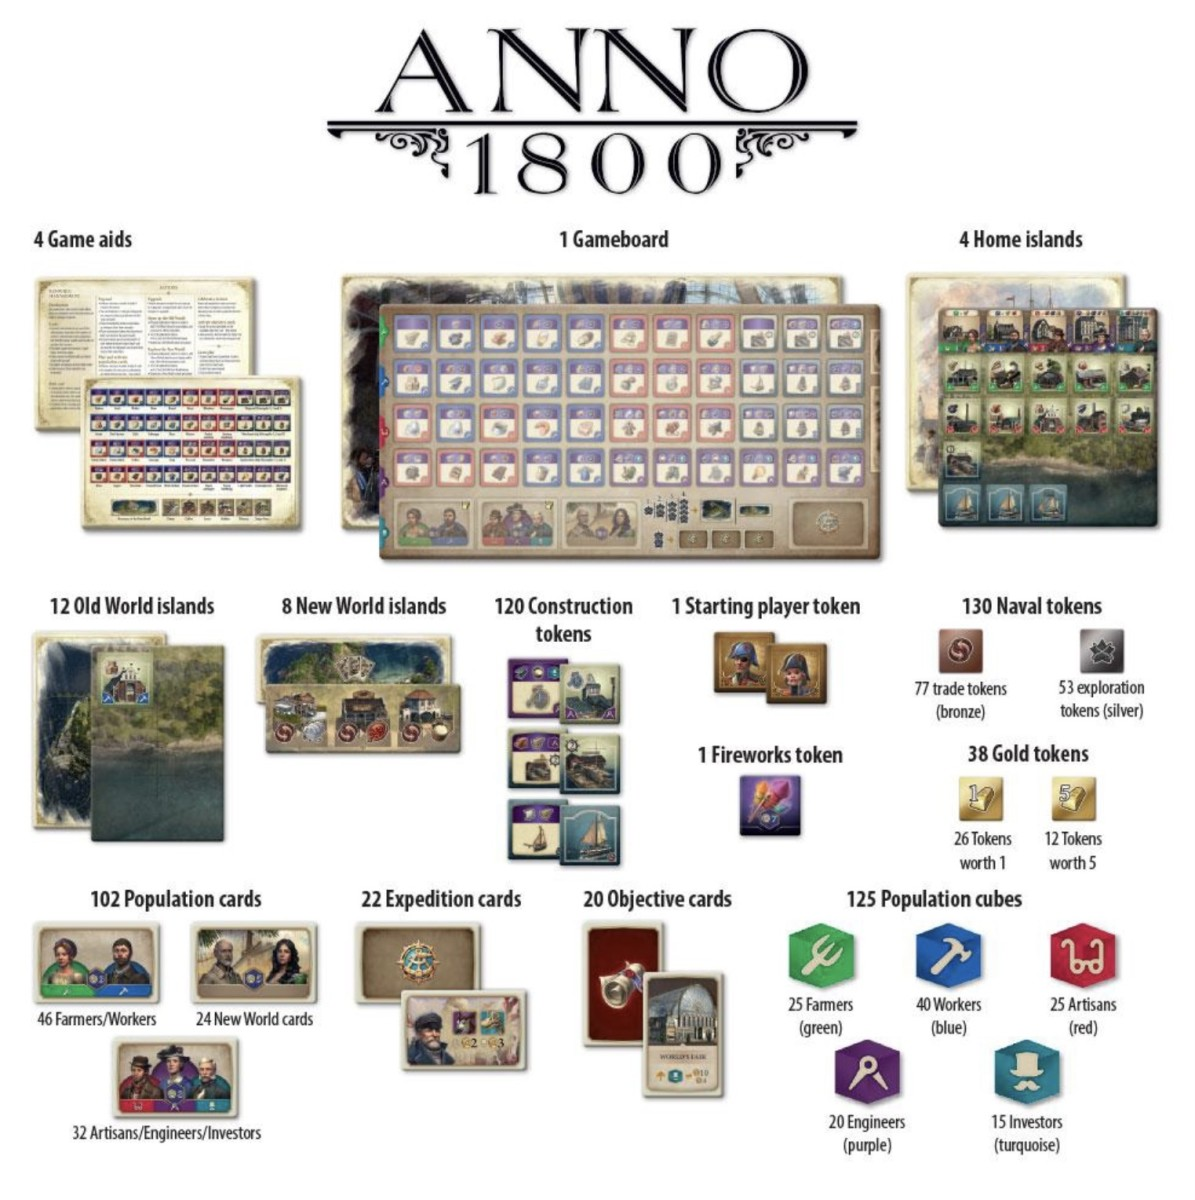 the-adventures-of-robin-hood-and-anno-1800-are-both-intriguing-strategy-board-games